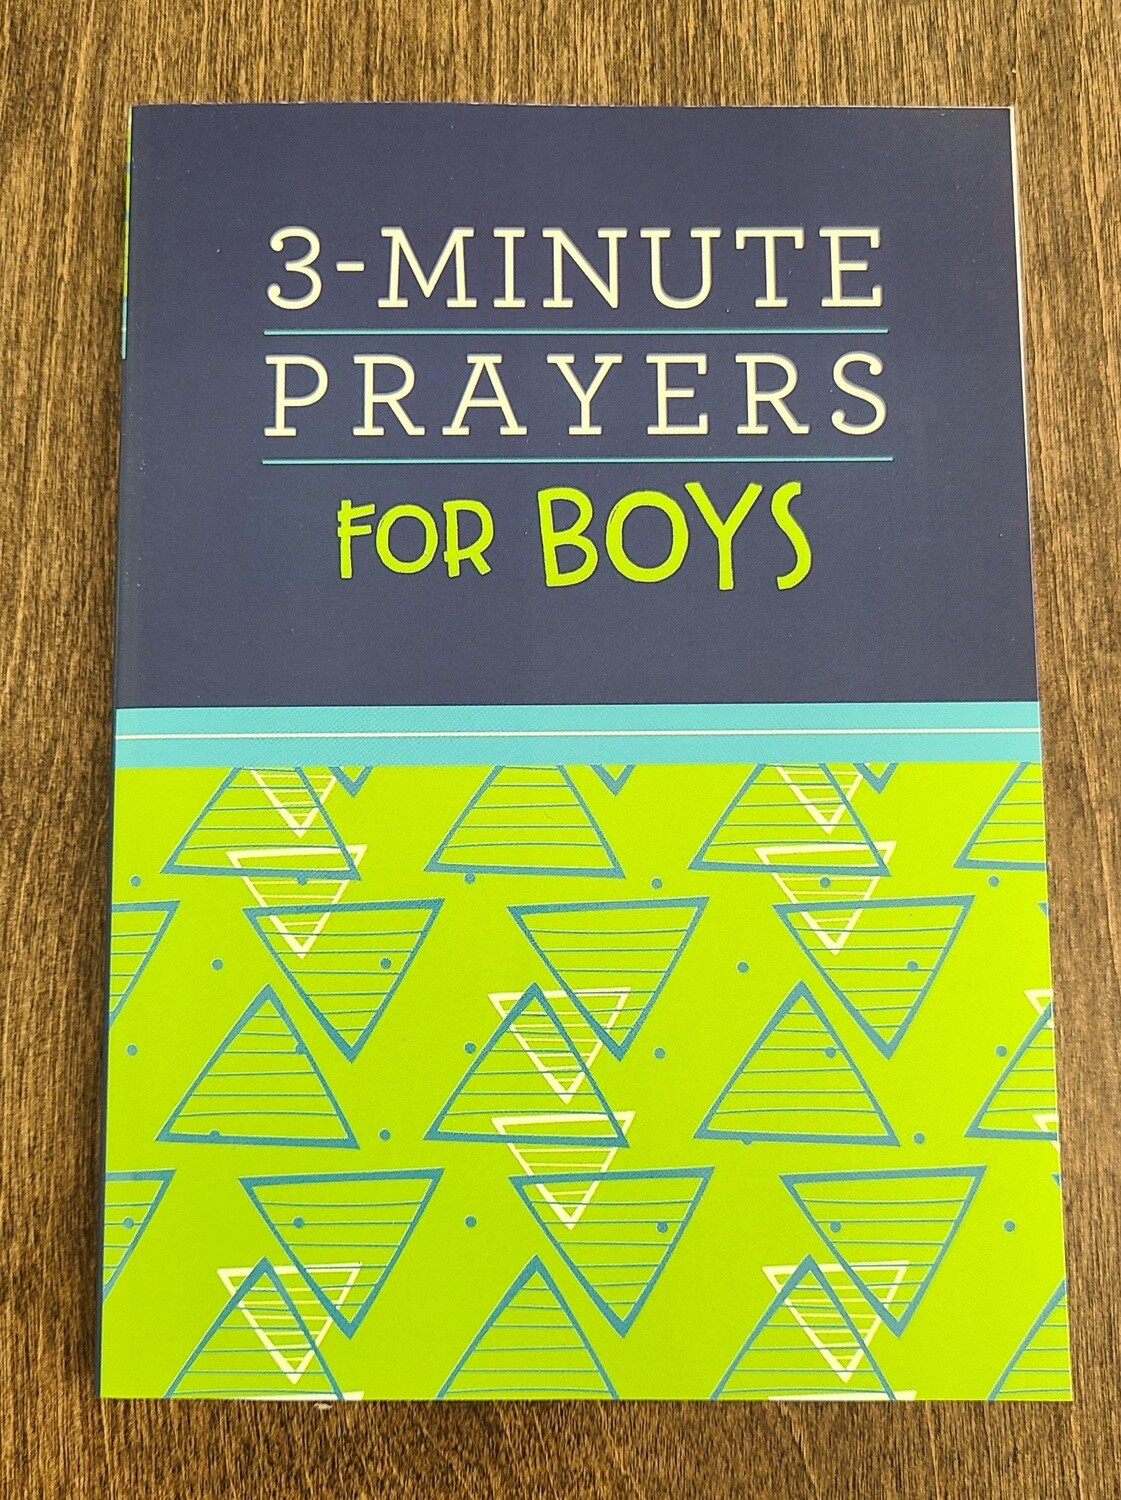 3-Minute Prayers for Boys by Josh Mosey